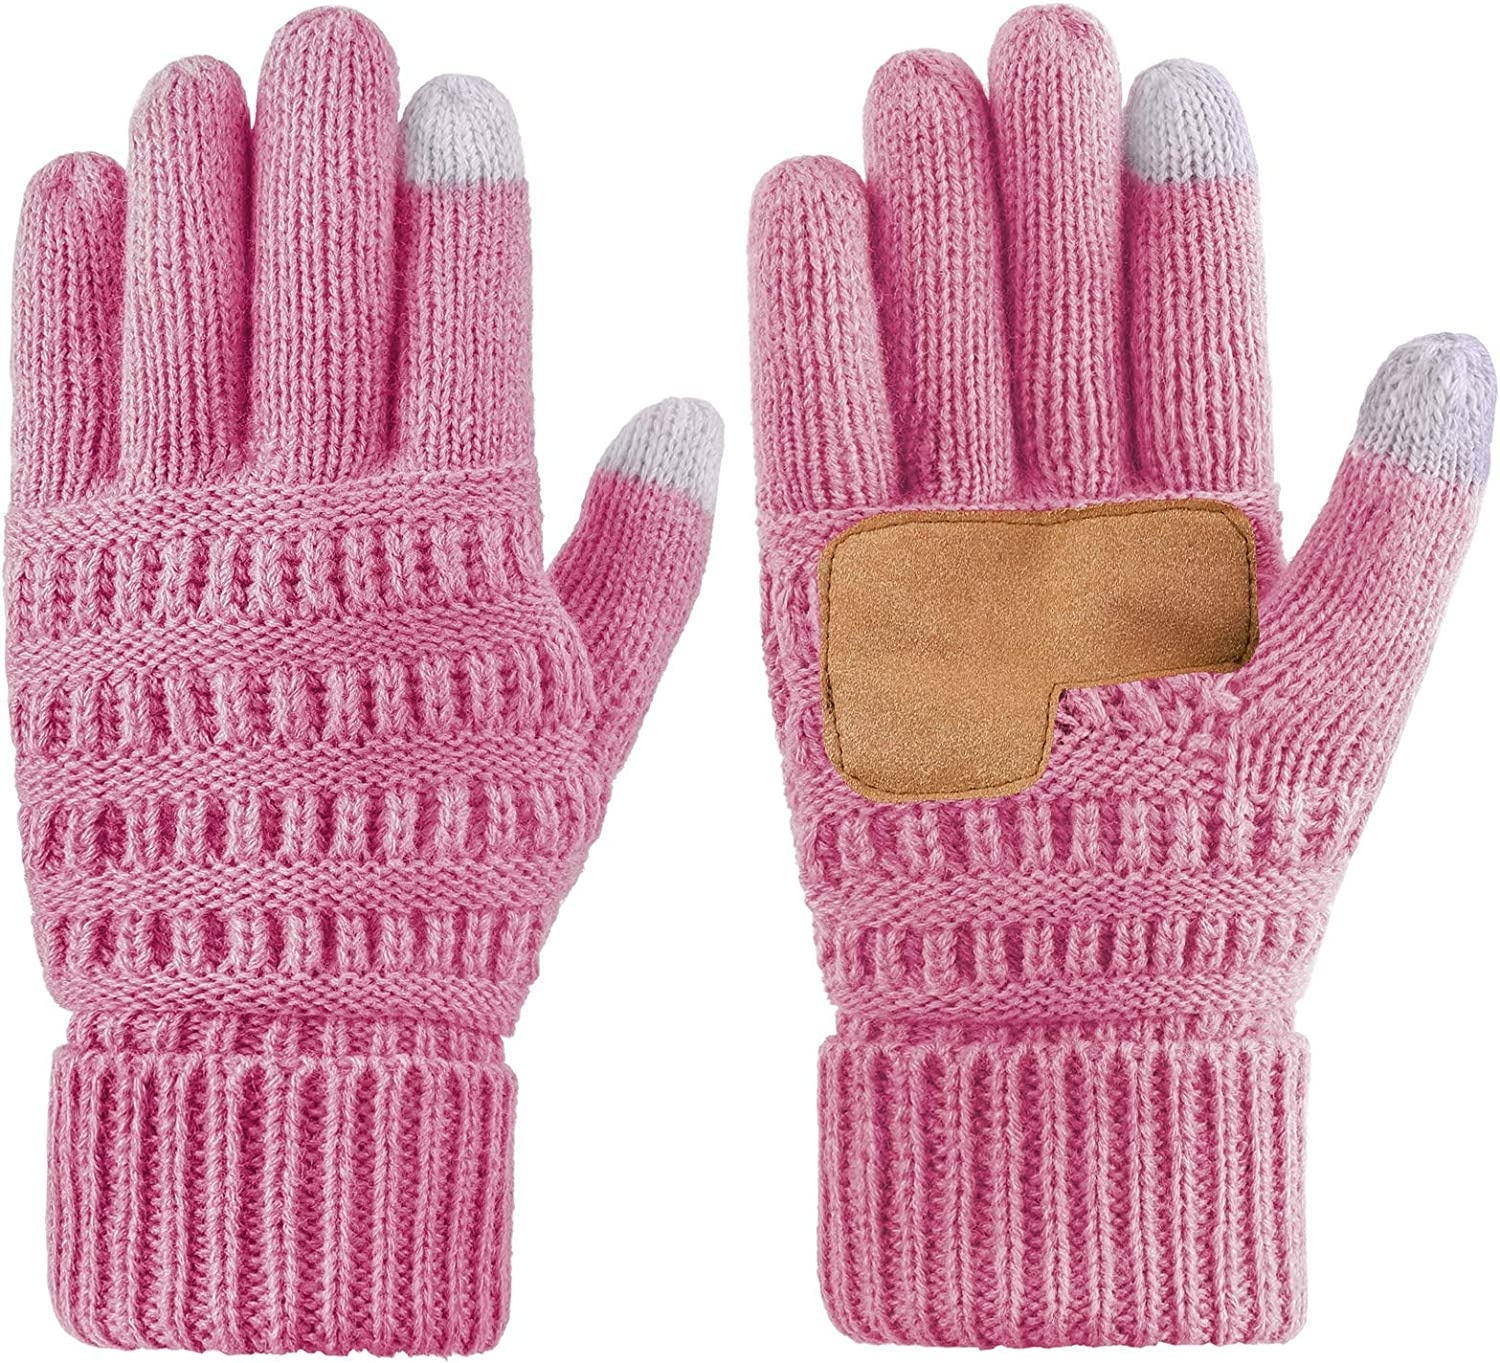 Cooraby Winter Touch Screen Gloves Thick Cable Knit Gloves with Warm Thermal Lining Cuff Soft Gloves for Men Women